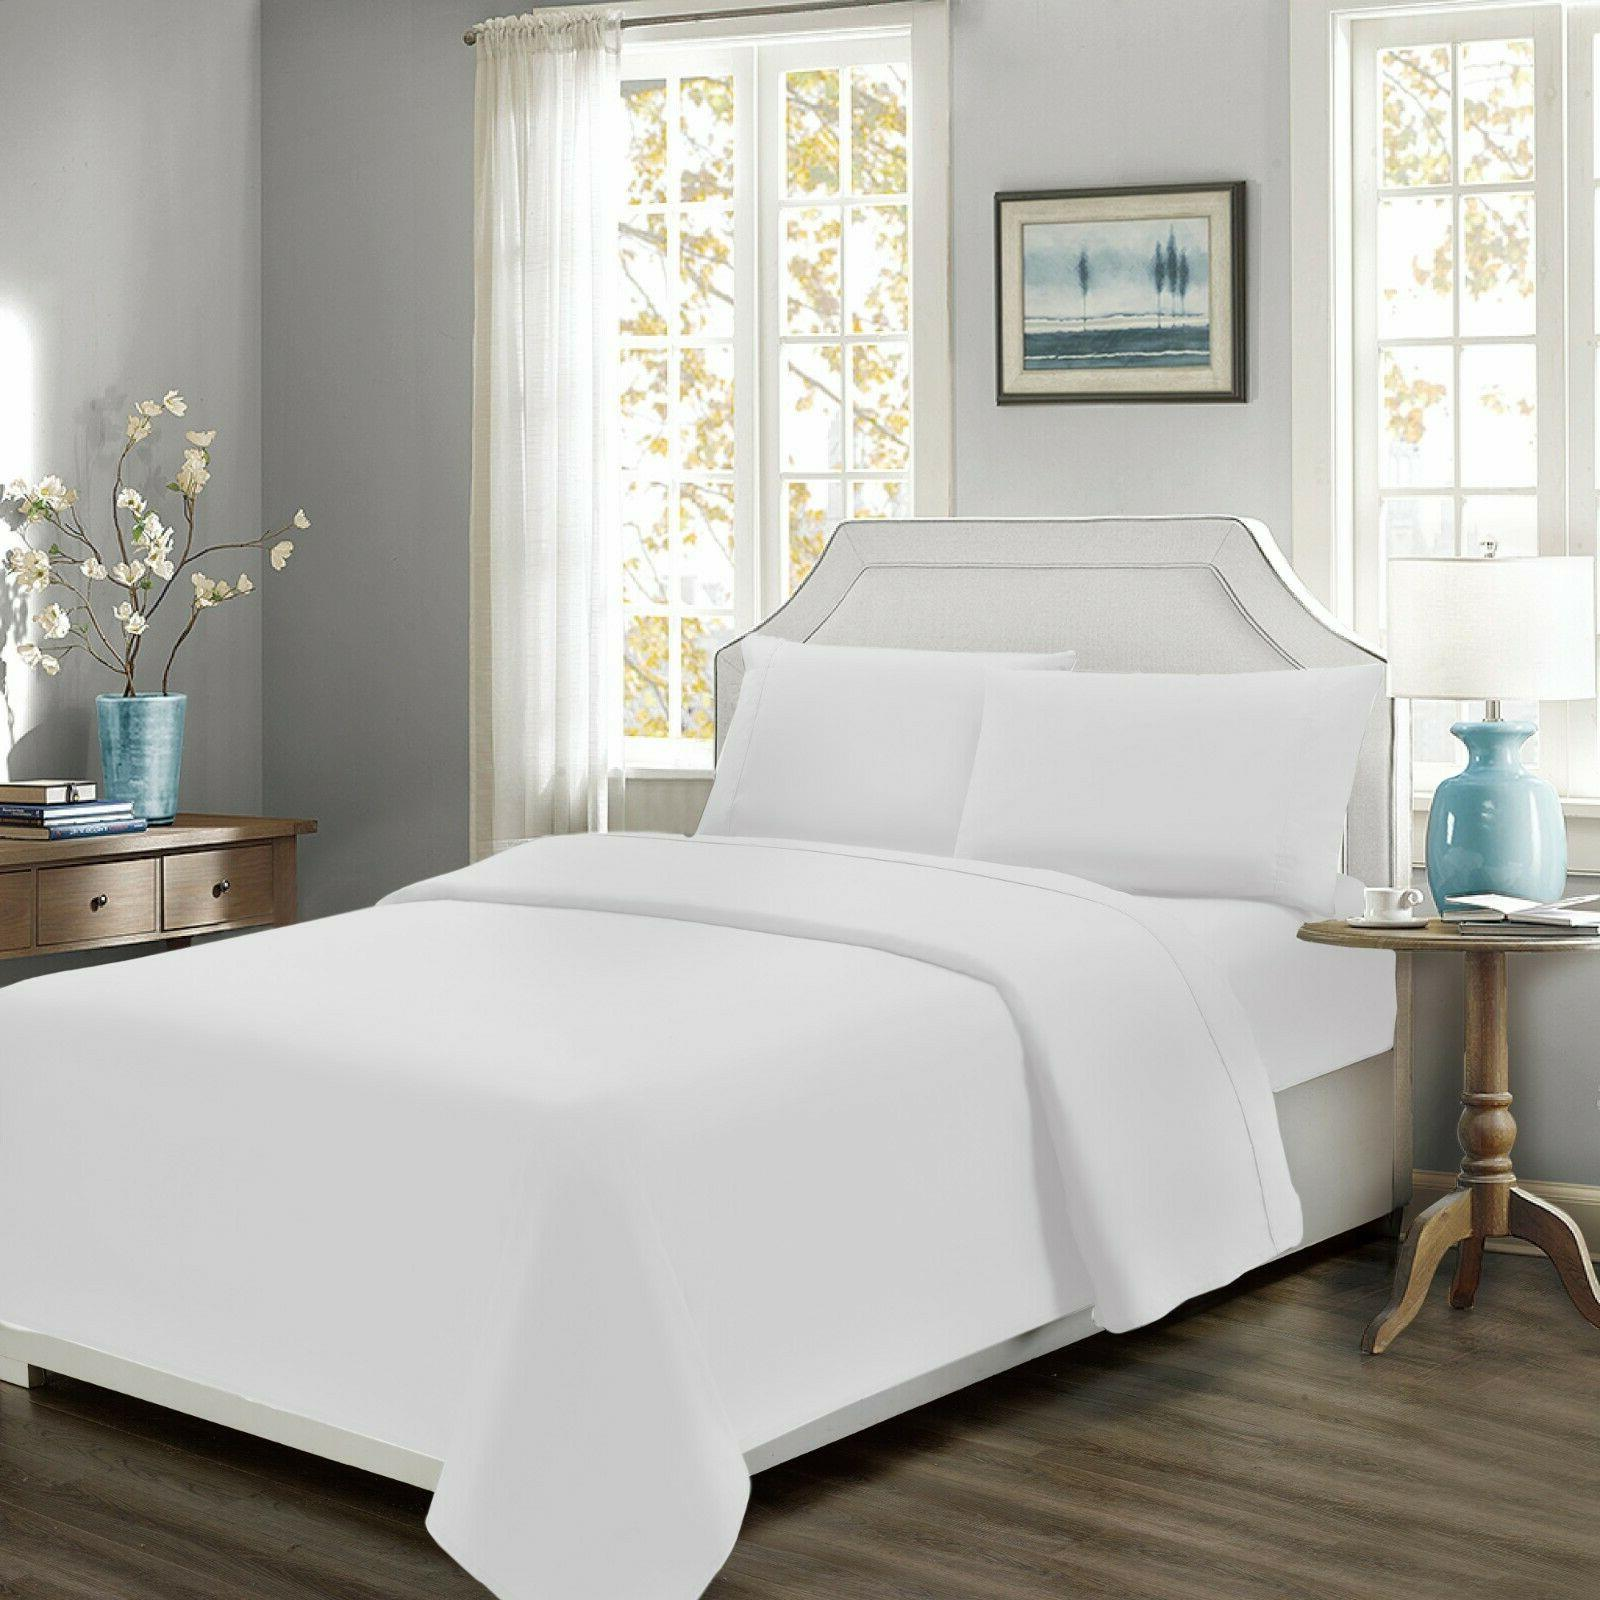 Mellanni Percale Cotton Bed Sheet Set 300 ThreadCount Deep P